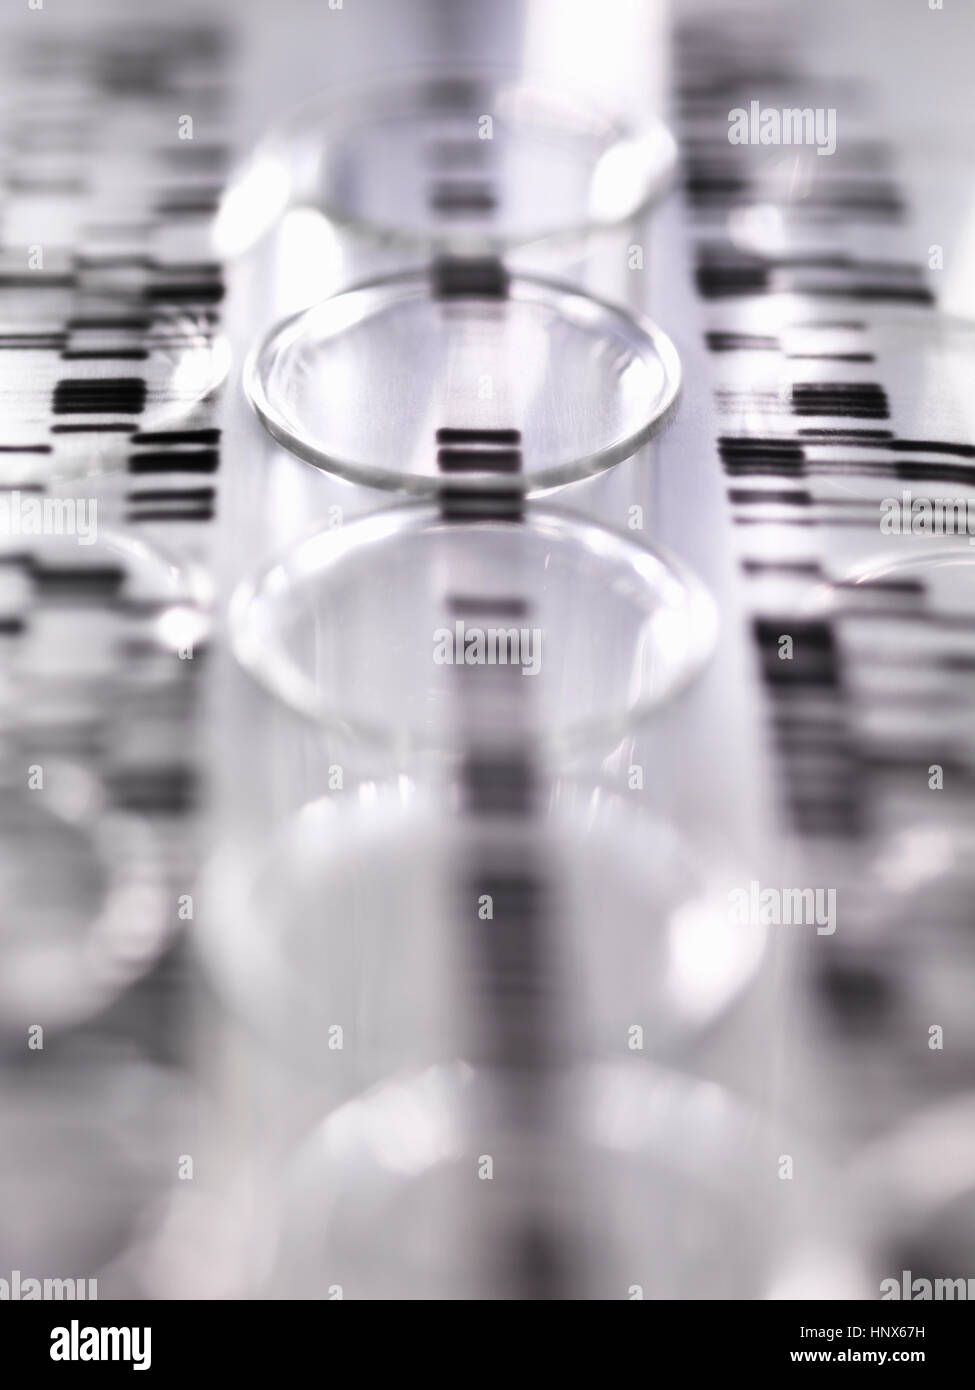 DNA autoradiogram gel illustrating genetic results laying on a row of test tubes in the laboratory - Stock Image